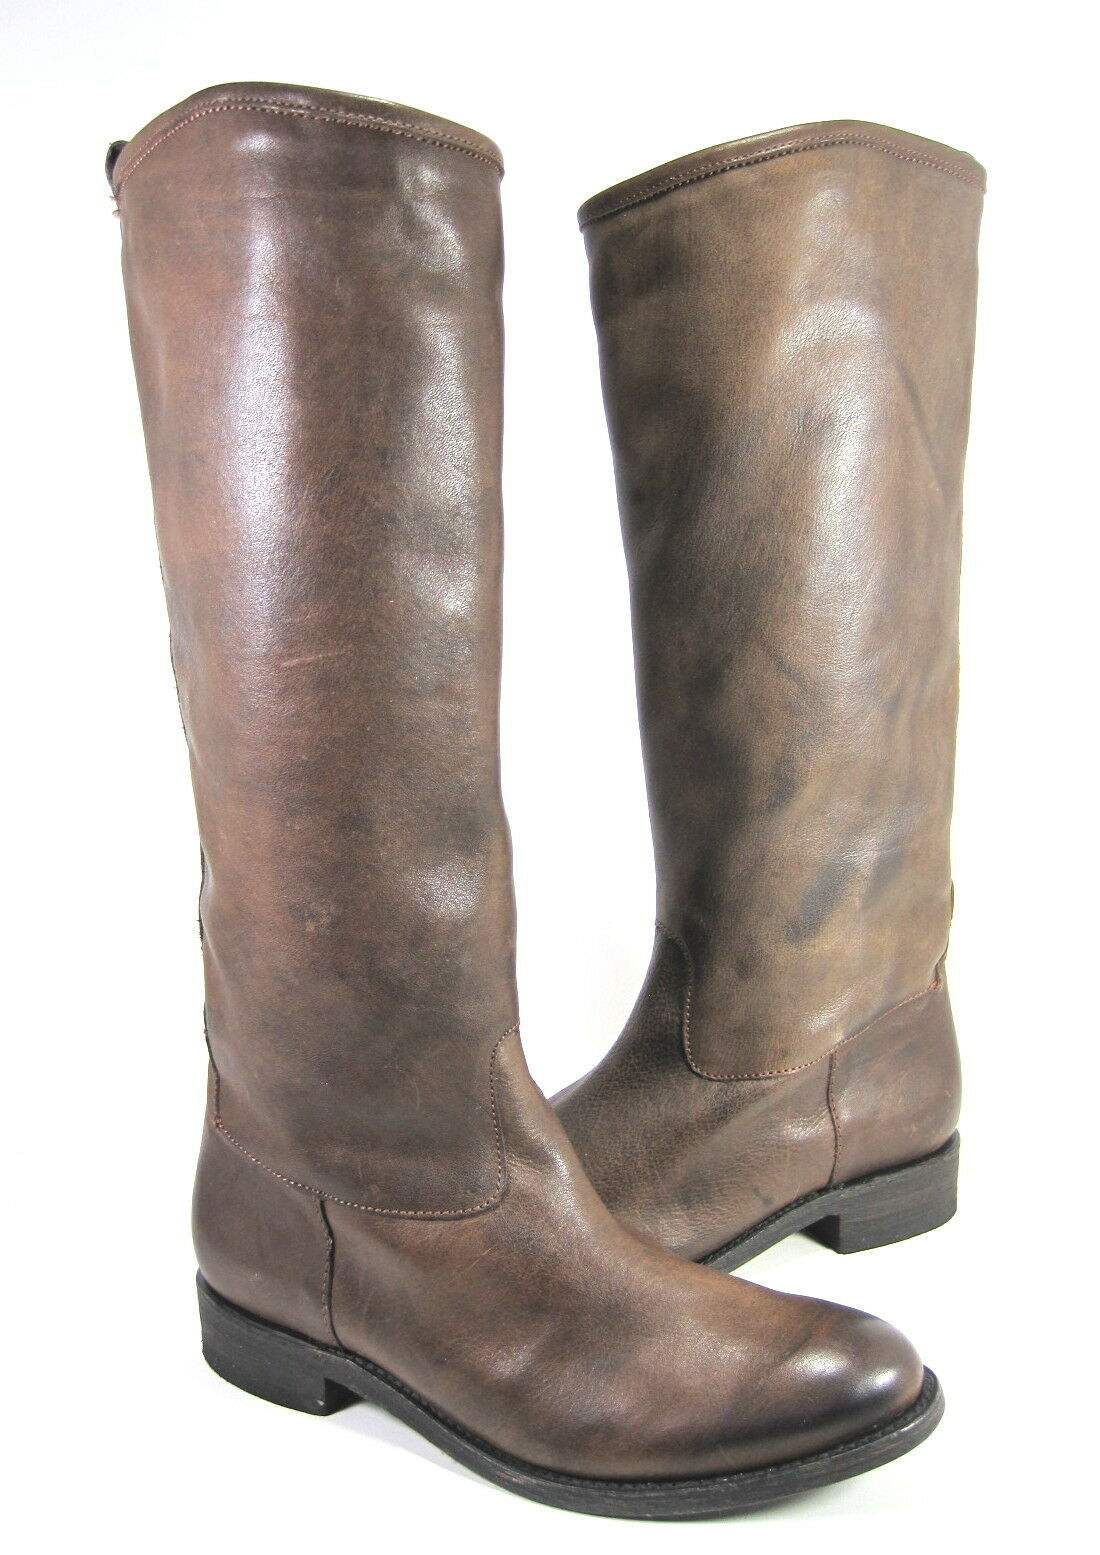 DOLCE VITA WOMEN'S PEPINO KNEE-HIGH BOOT CHOCOLATE LEATHER US SIZE 8 MEDIUM (B)M